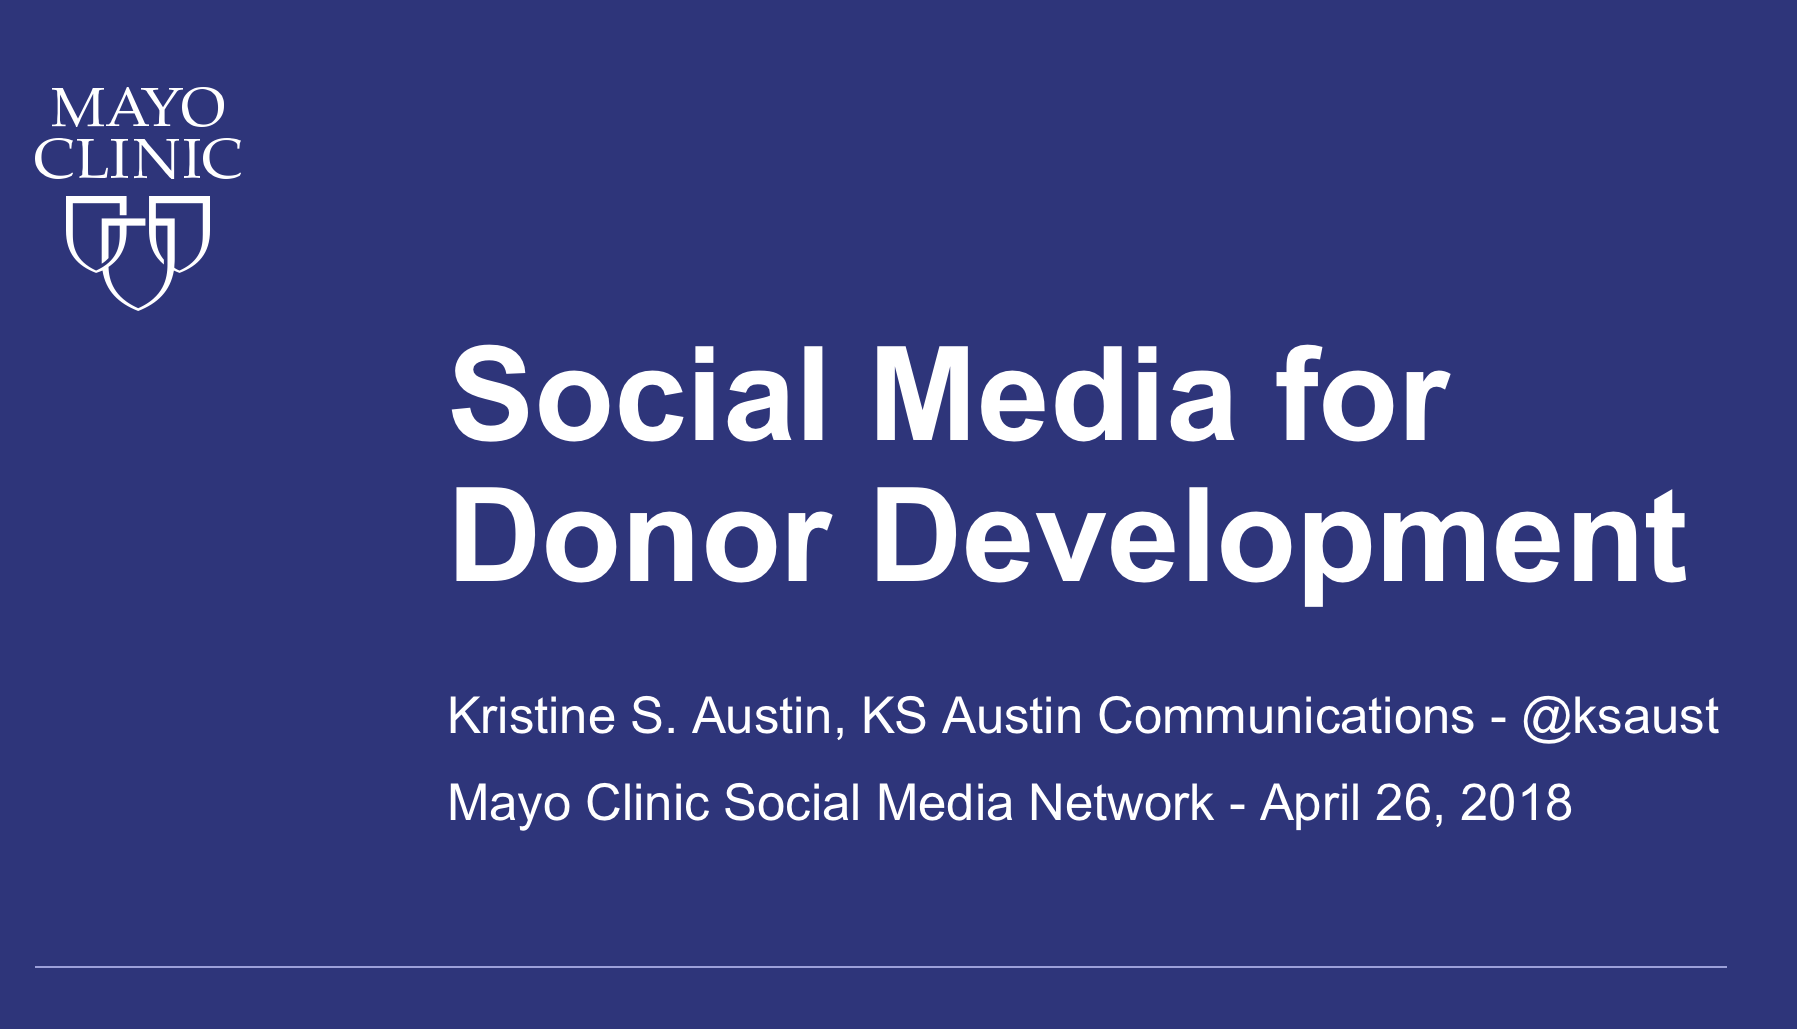 Use Social Media to Find New Donors and Meet Fundraising Goals